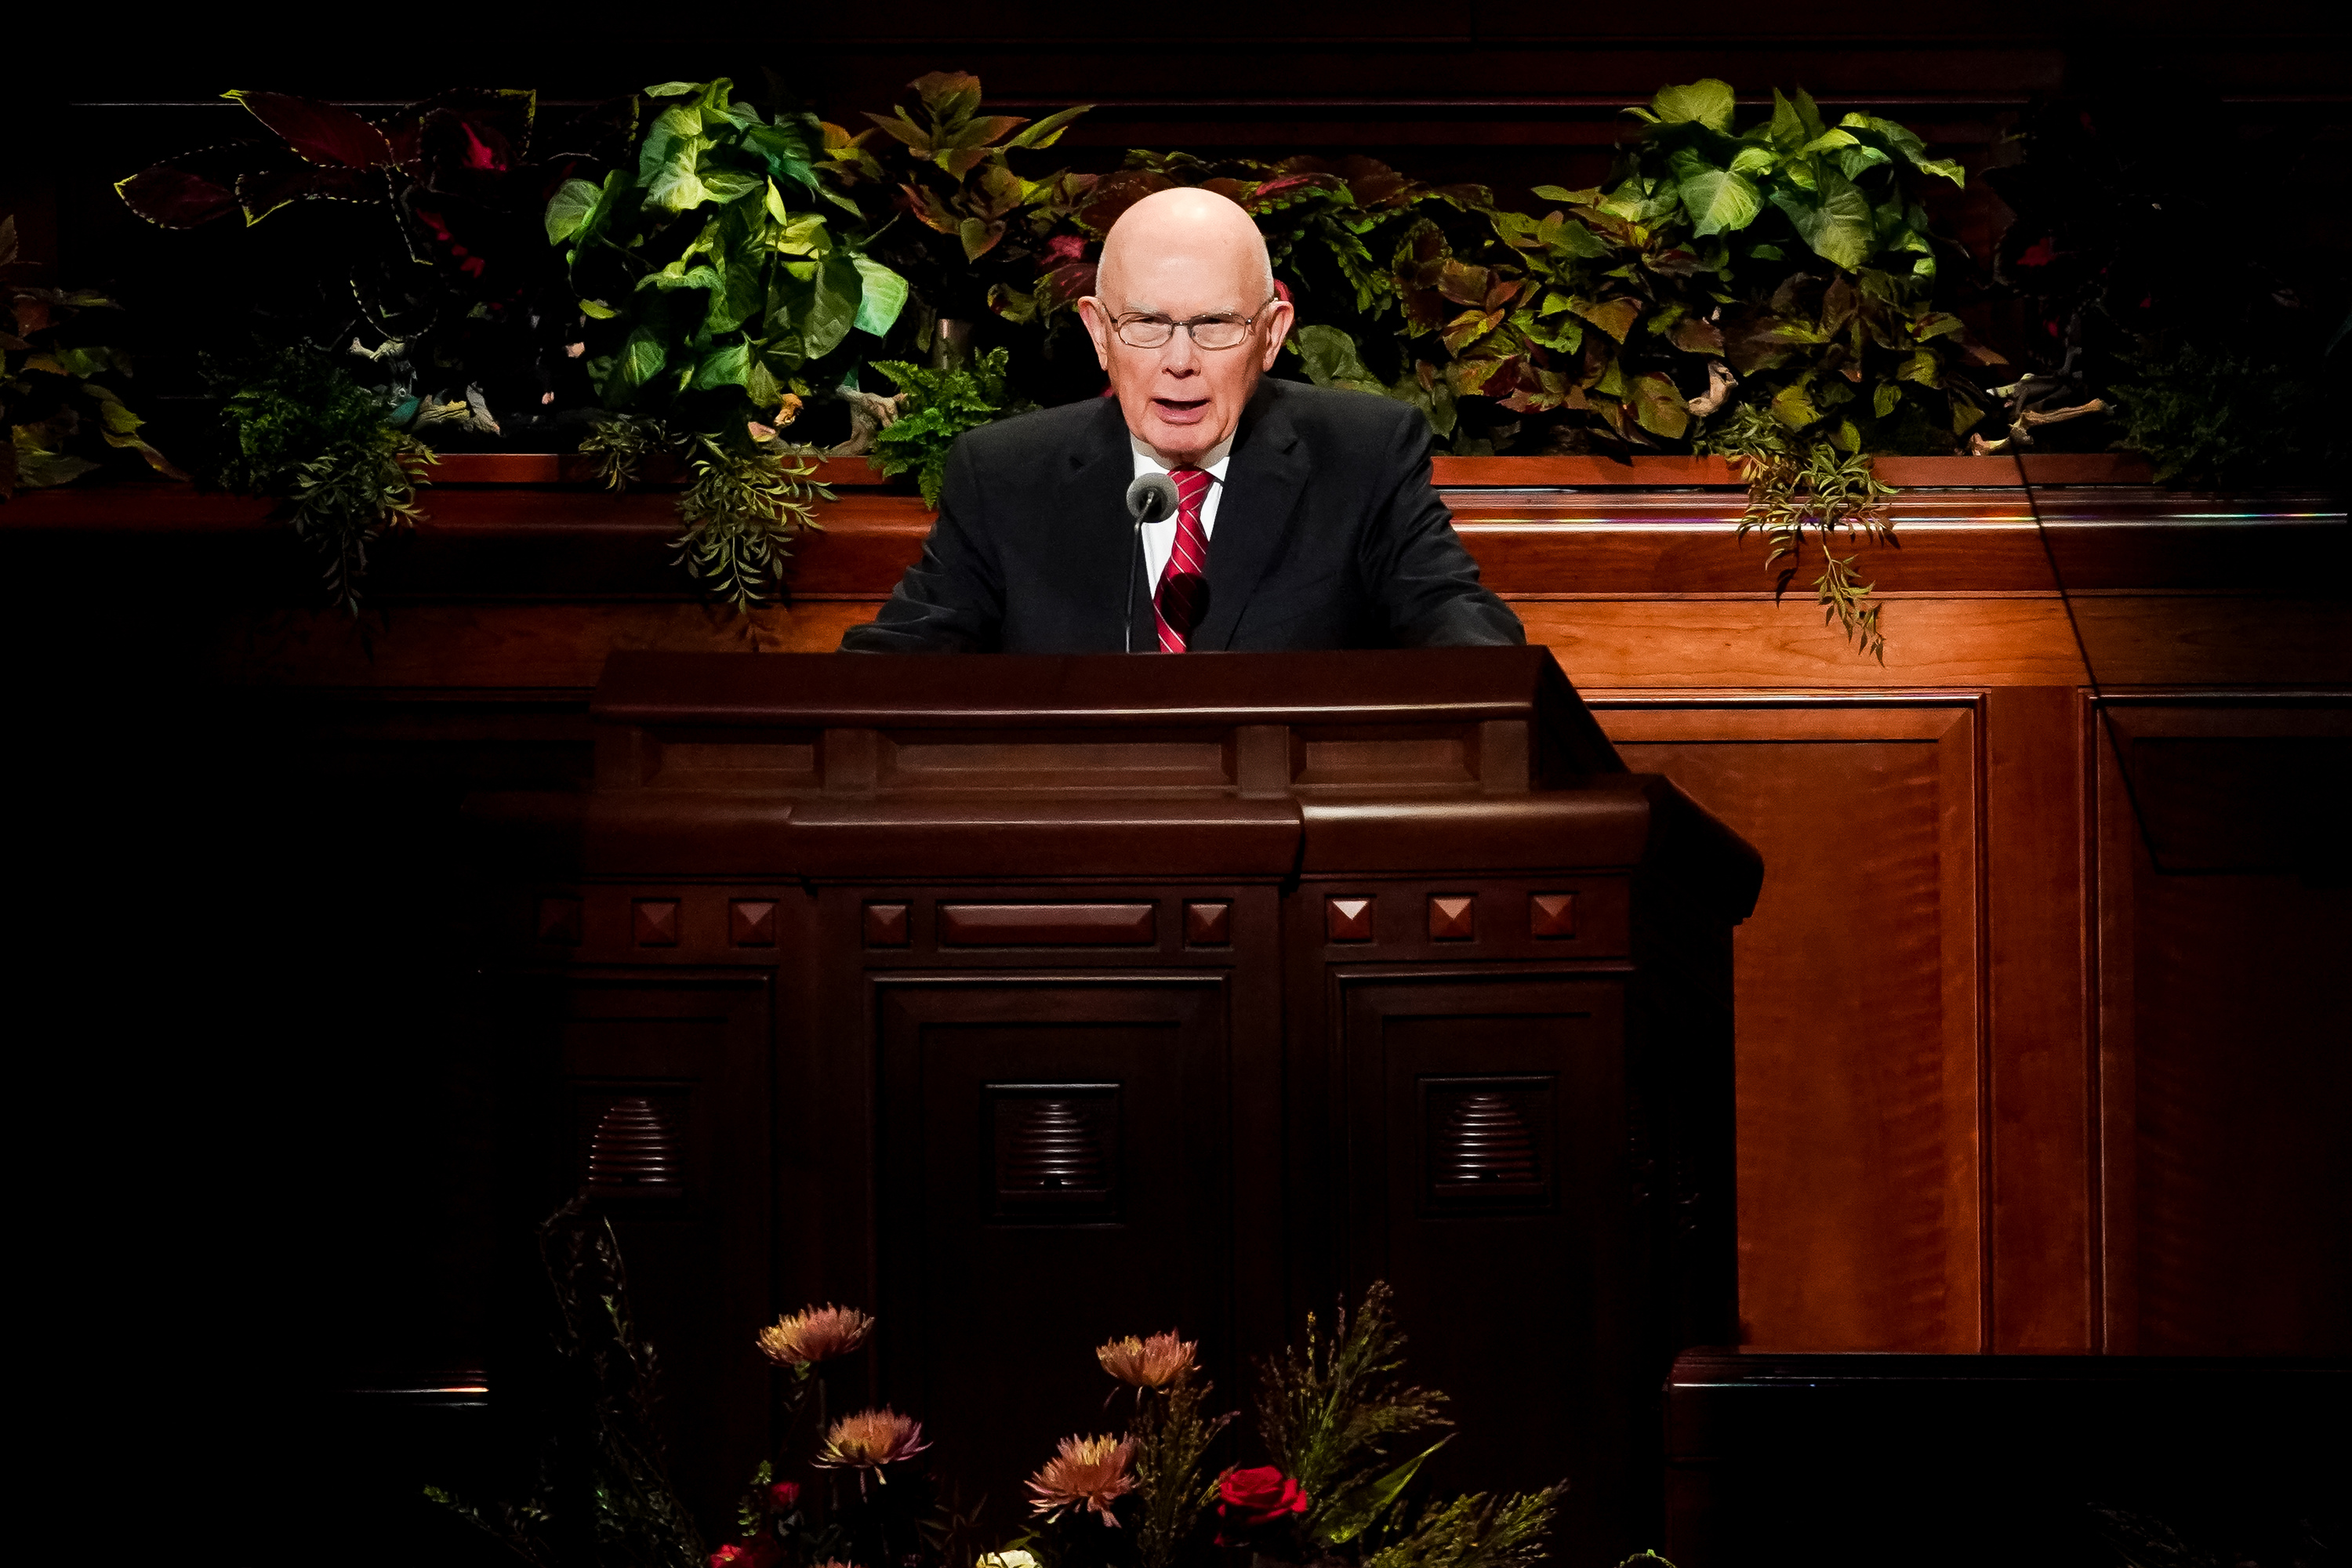 President Dallin H. Oaks, first counselor in the First Presidency, speaks during the Saturday morning session of the 189th Semiannual General Conference of The Church of Jesus Christ of Latter-day Saints in the Conference Center in Salt Lake City on Saturday, Oct. 5, 2019.